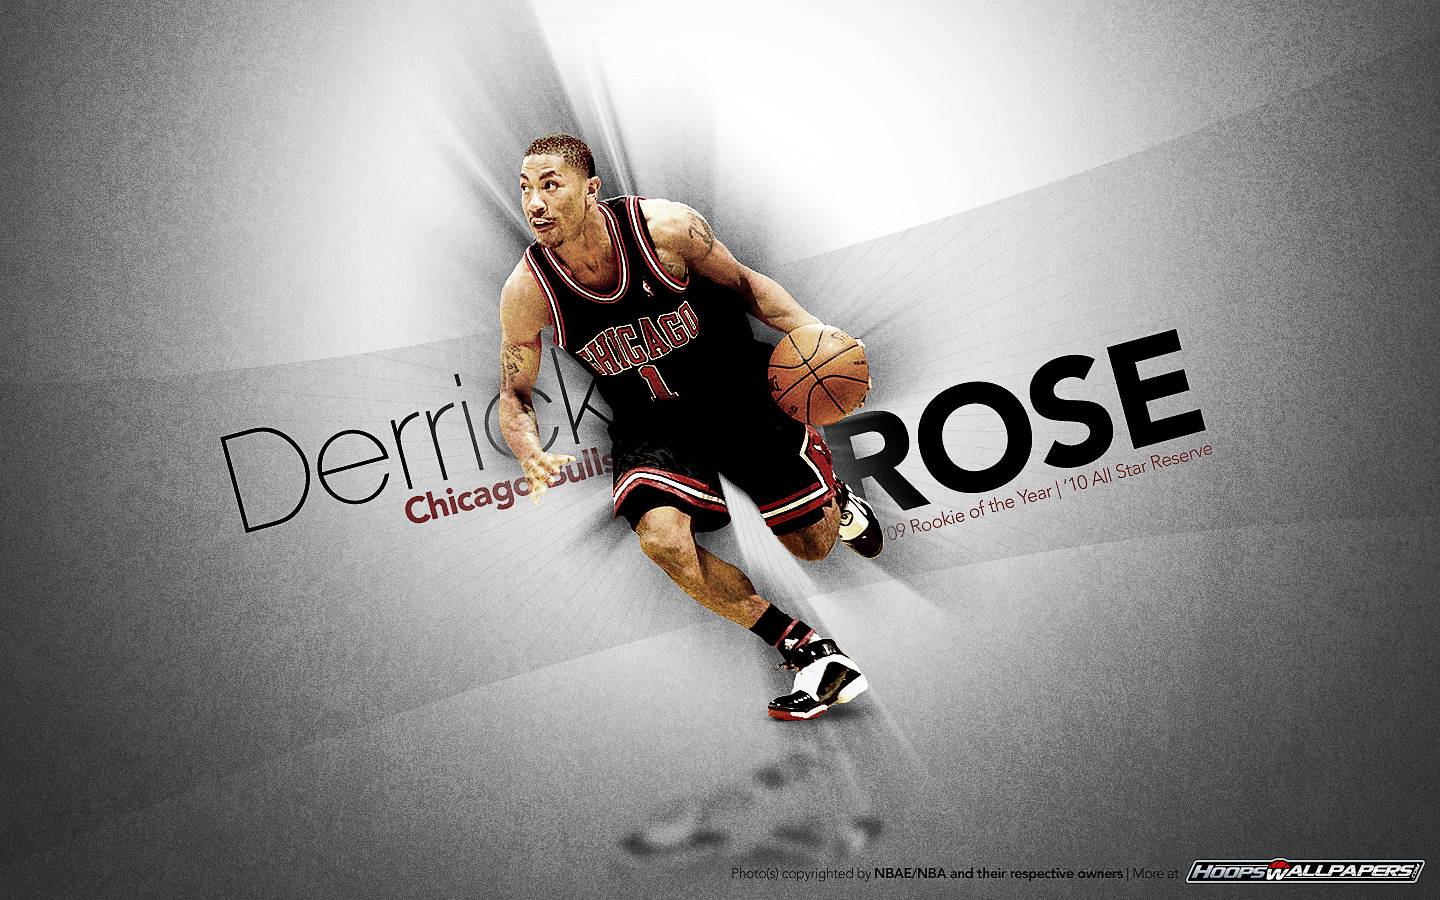 HoopsWallpaperscom Get the latest HD and mobile NBA 1440x900